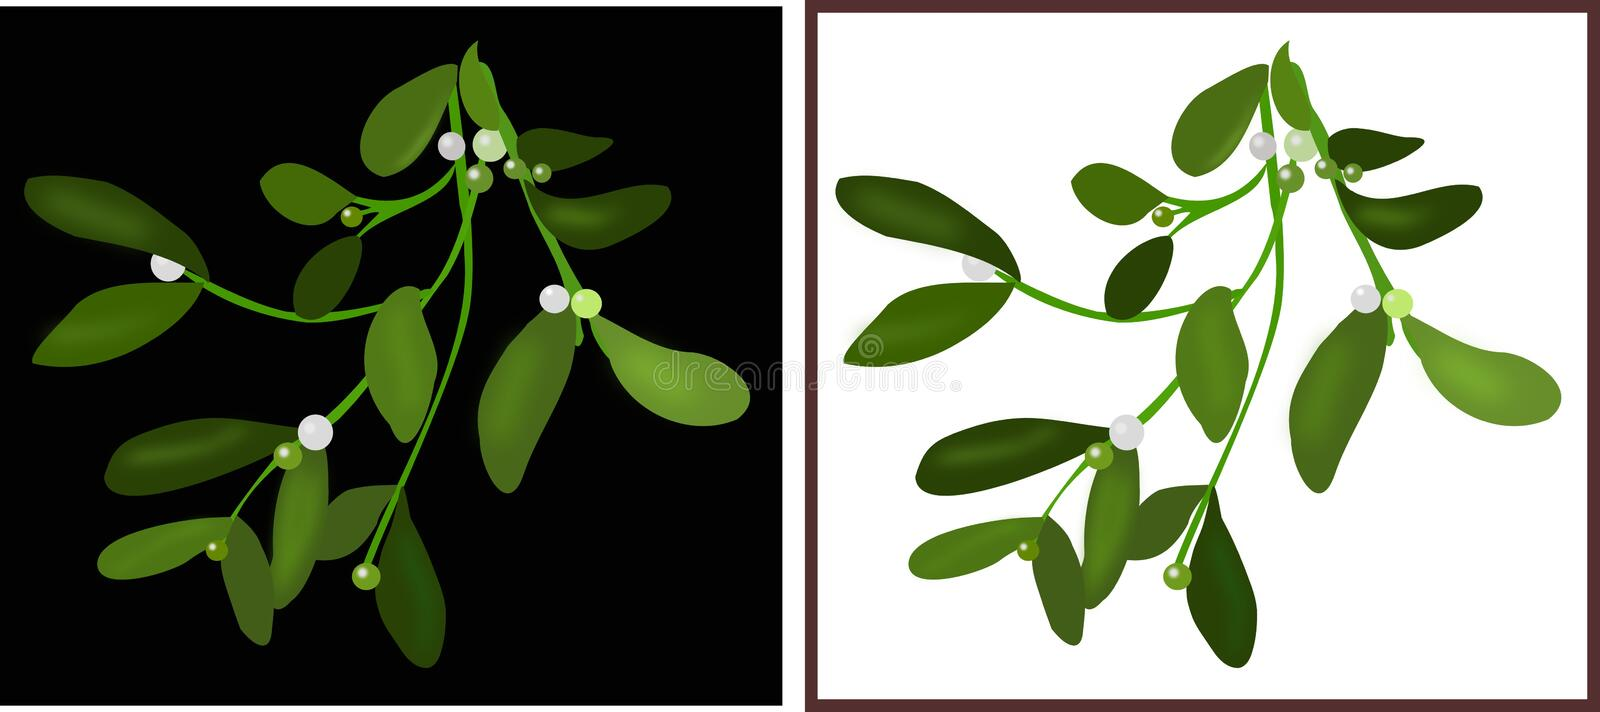 Mistletoe branch. Illustration of a branch of mistletoe in white and black backgrounds stock illustration